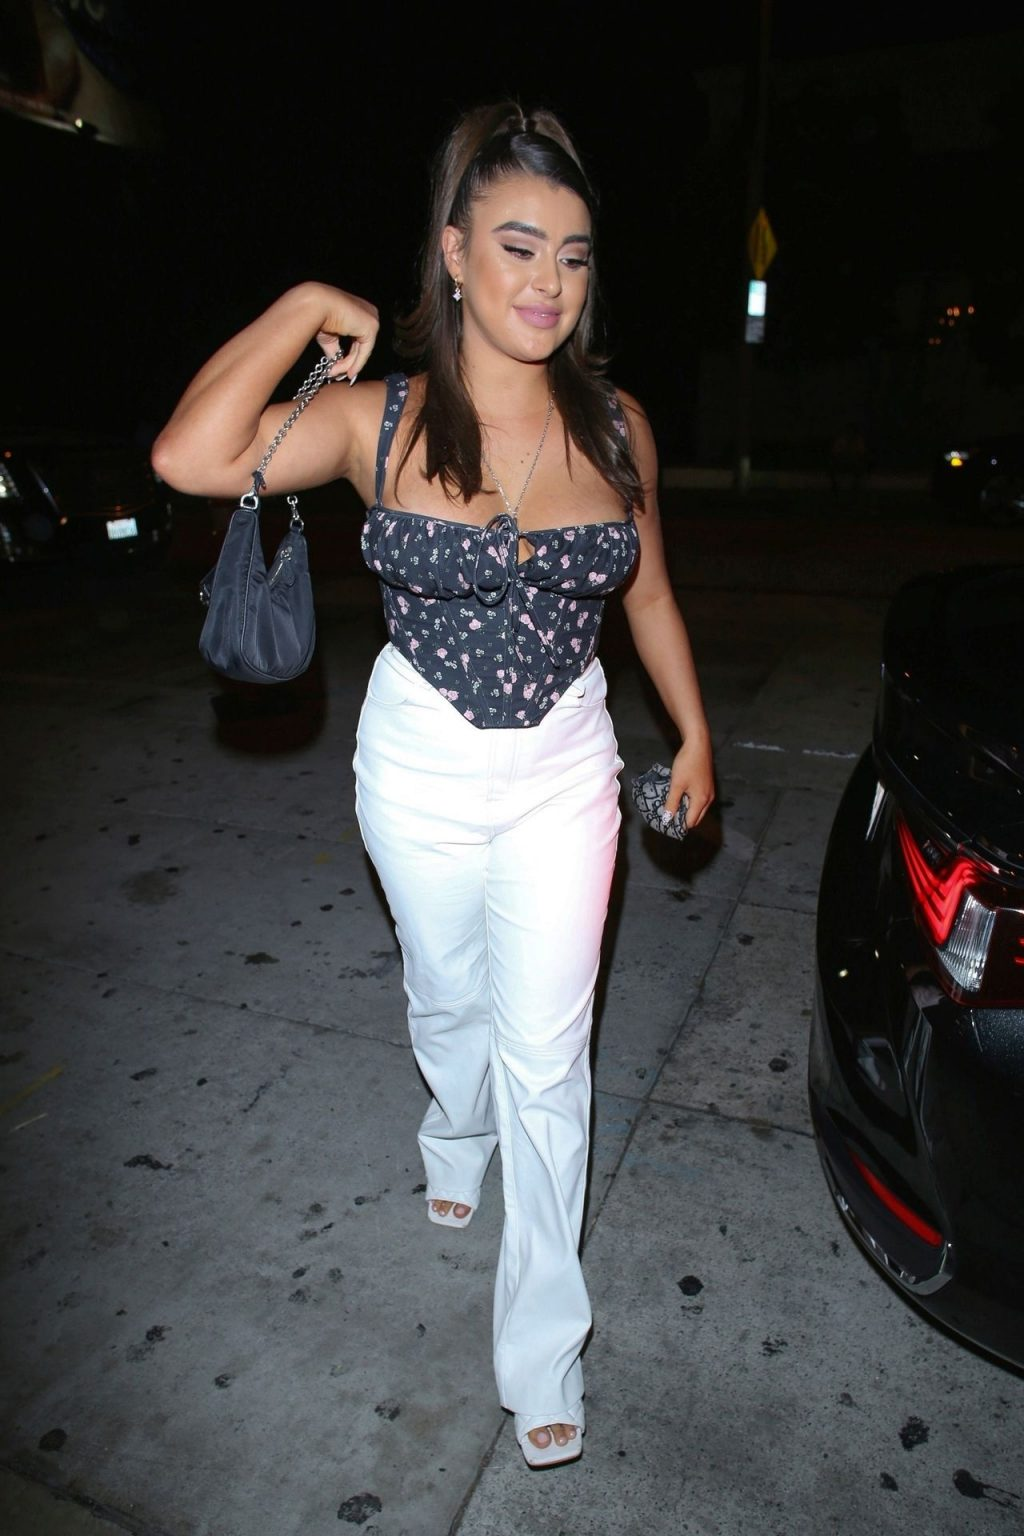 Kalani Hilliker Shows Off Her Tits as She Arrives at Catch in WeHo (20 Photos)